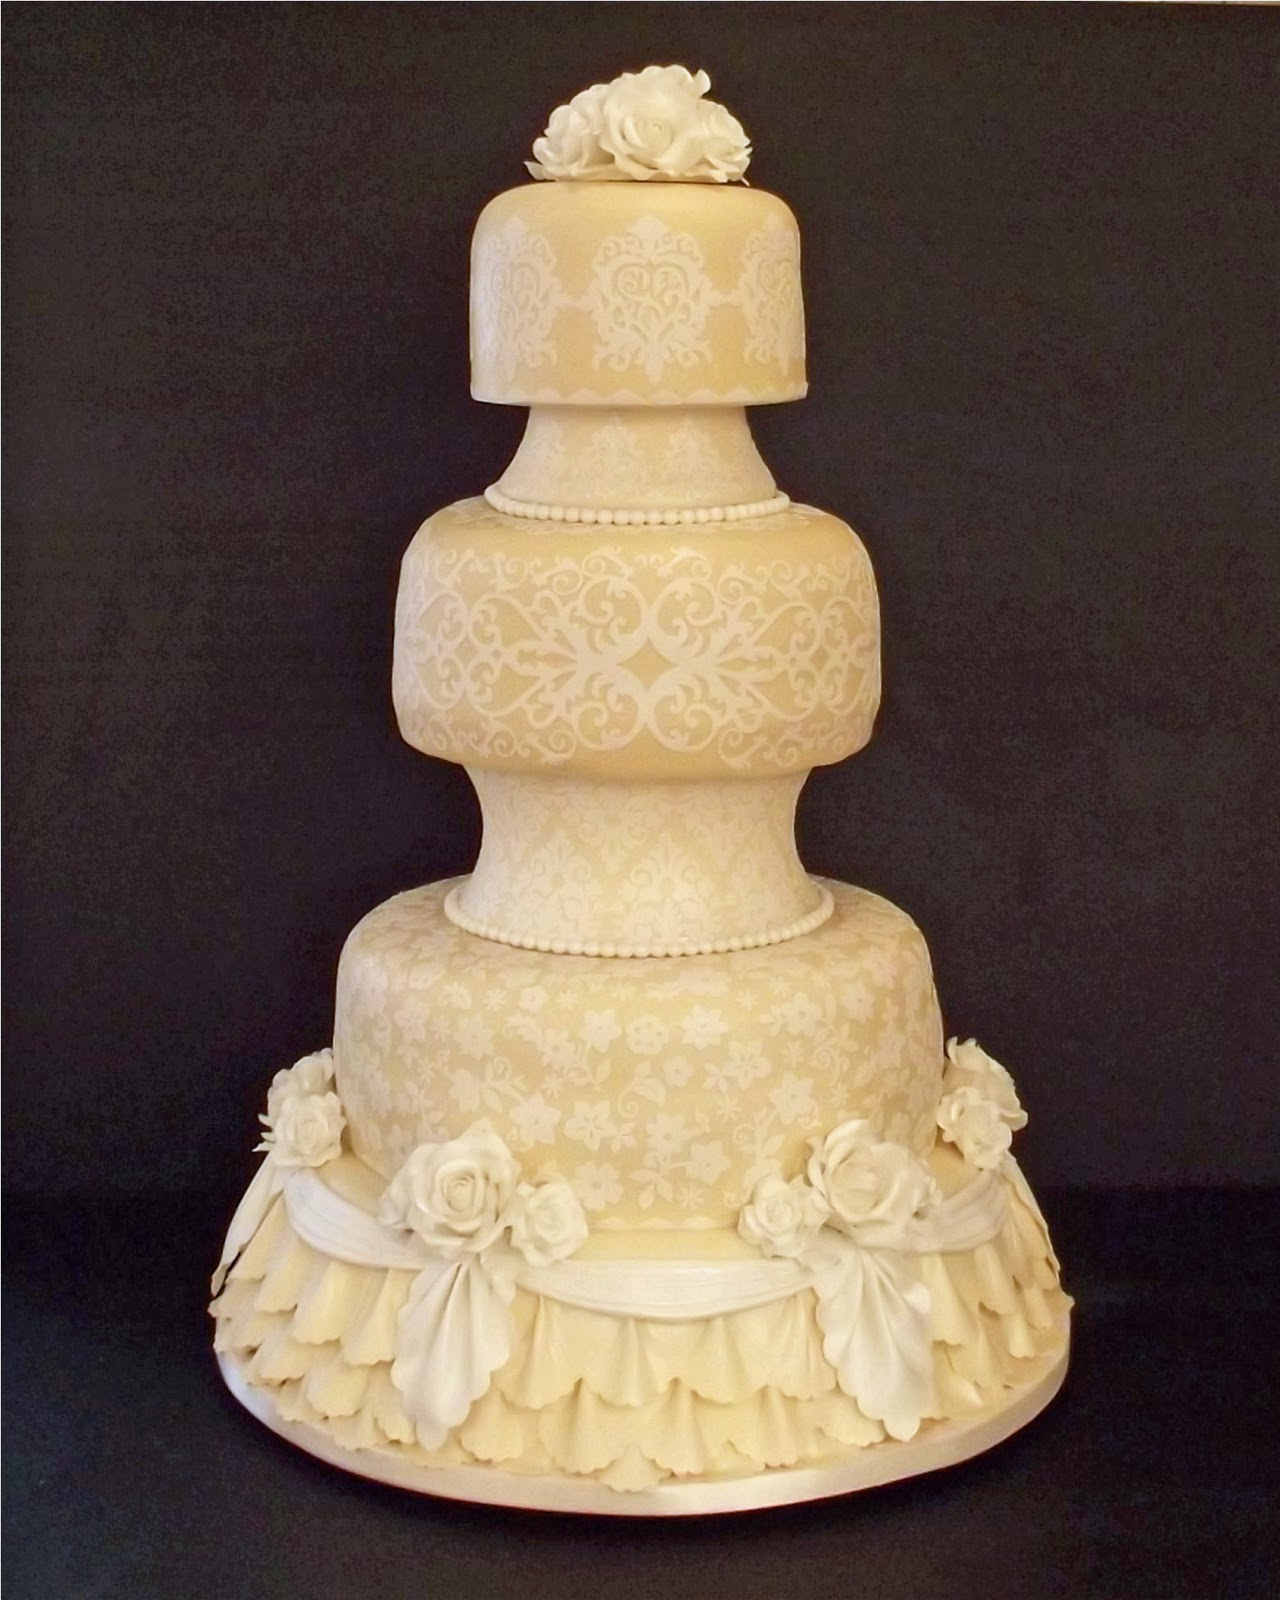 Creative Designs For Cakes: Creating an Amazing Wedding Cake